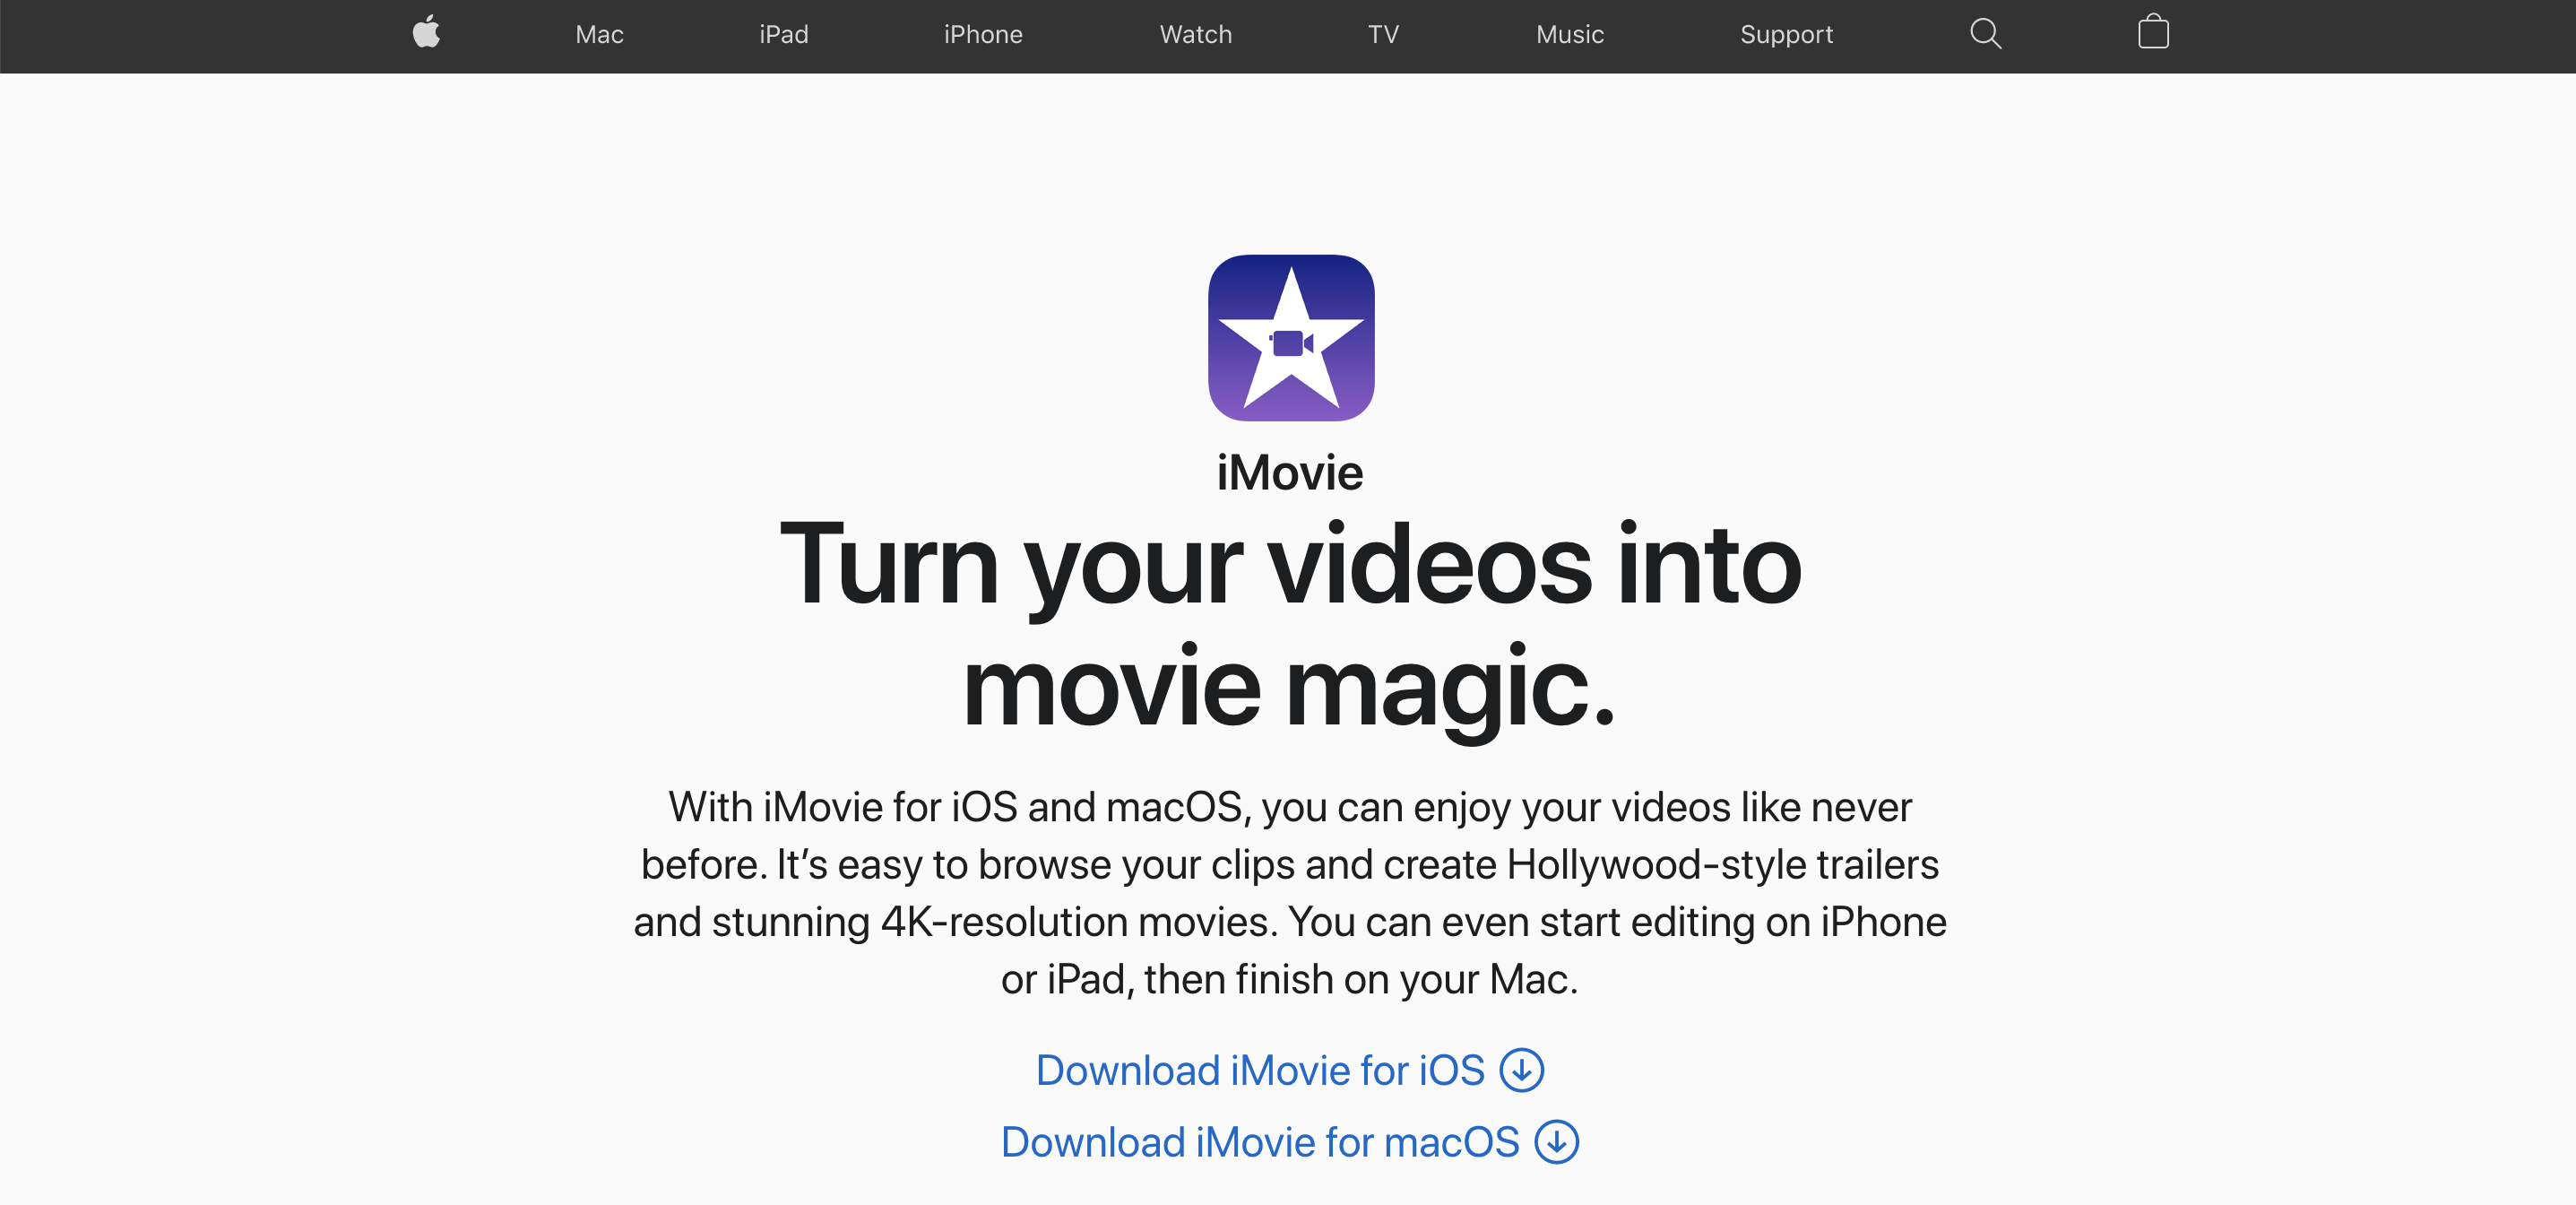 A screenshot of video editing tool iMovie's website.